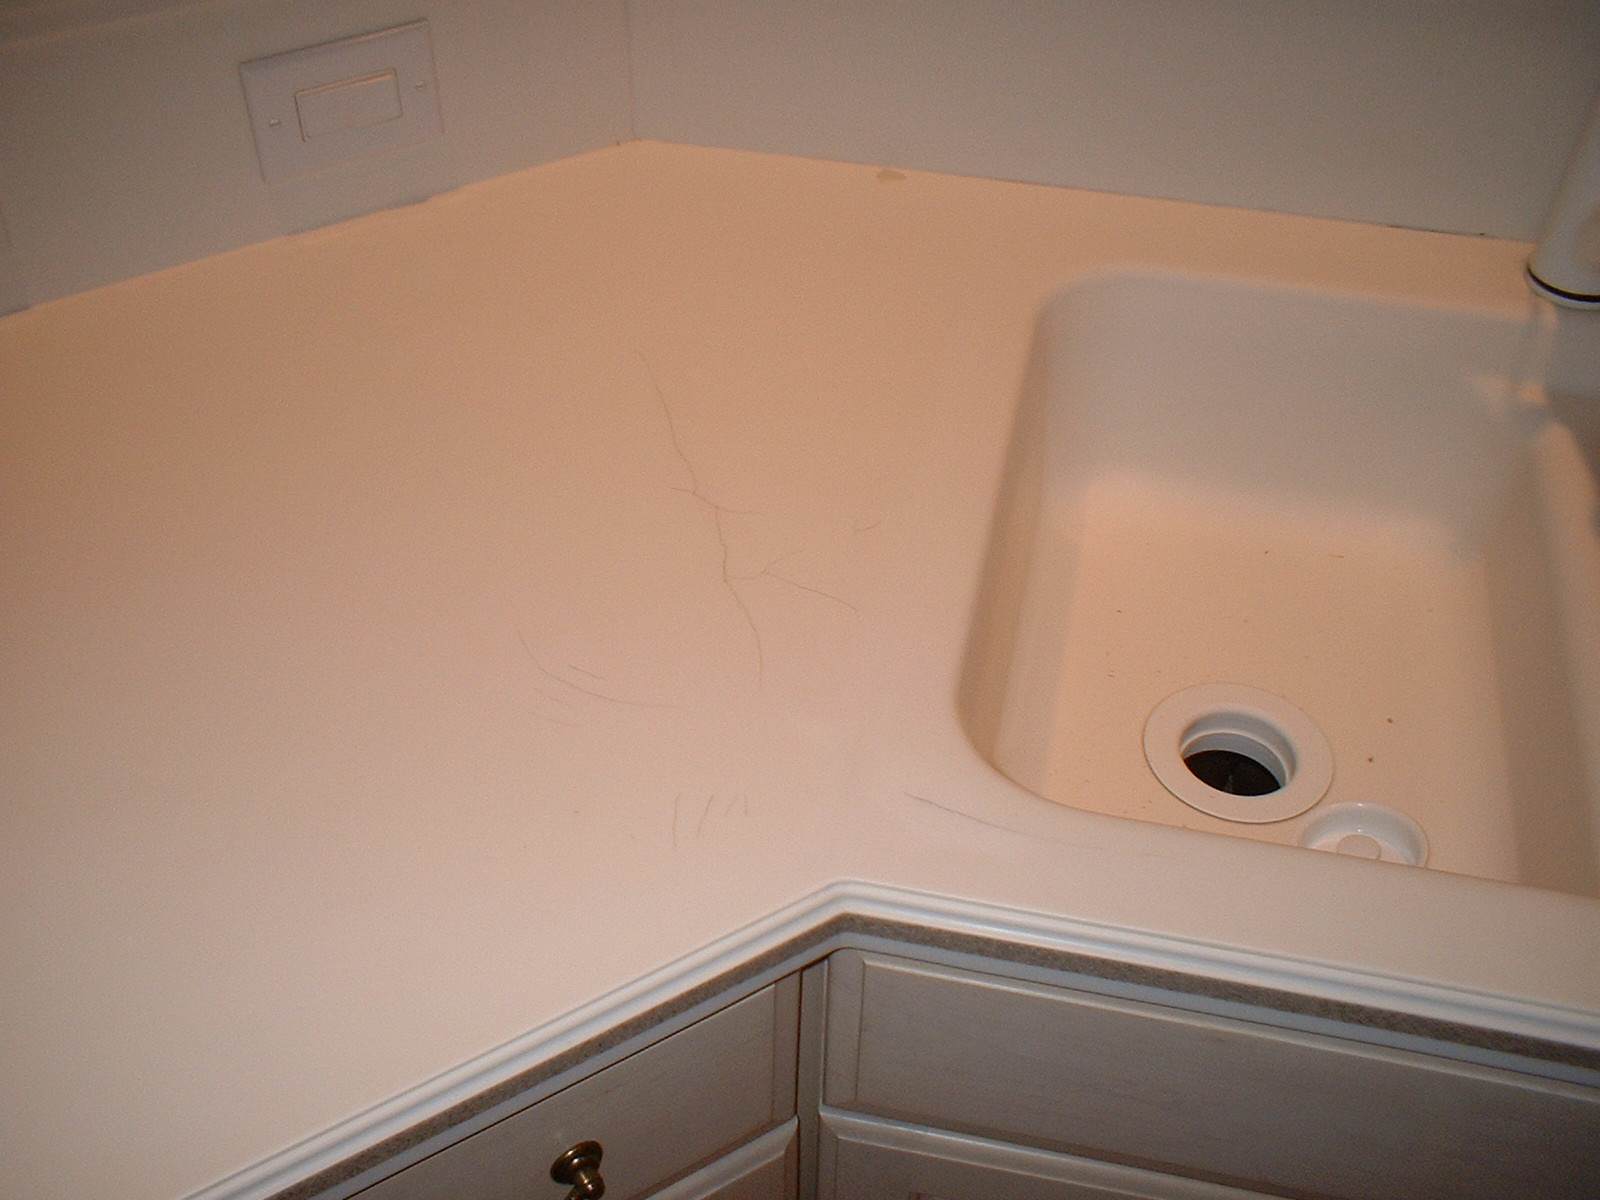 Repair Cracked And Broken Corian, Wilsonart Gibraltar Solid Surface  Countertop, Any Damage Can Be Repaired